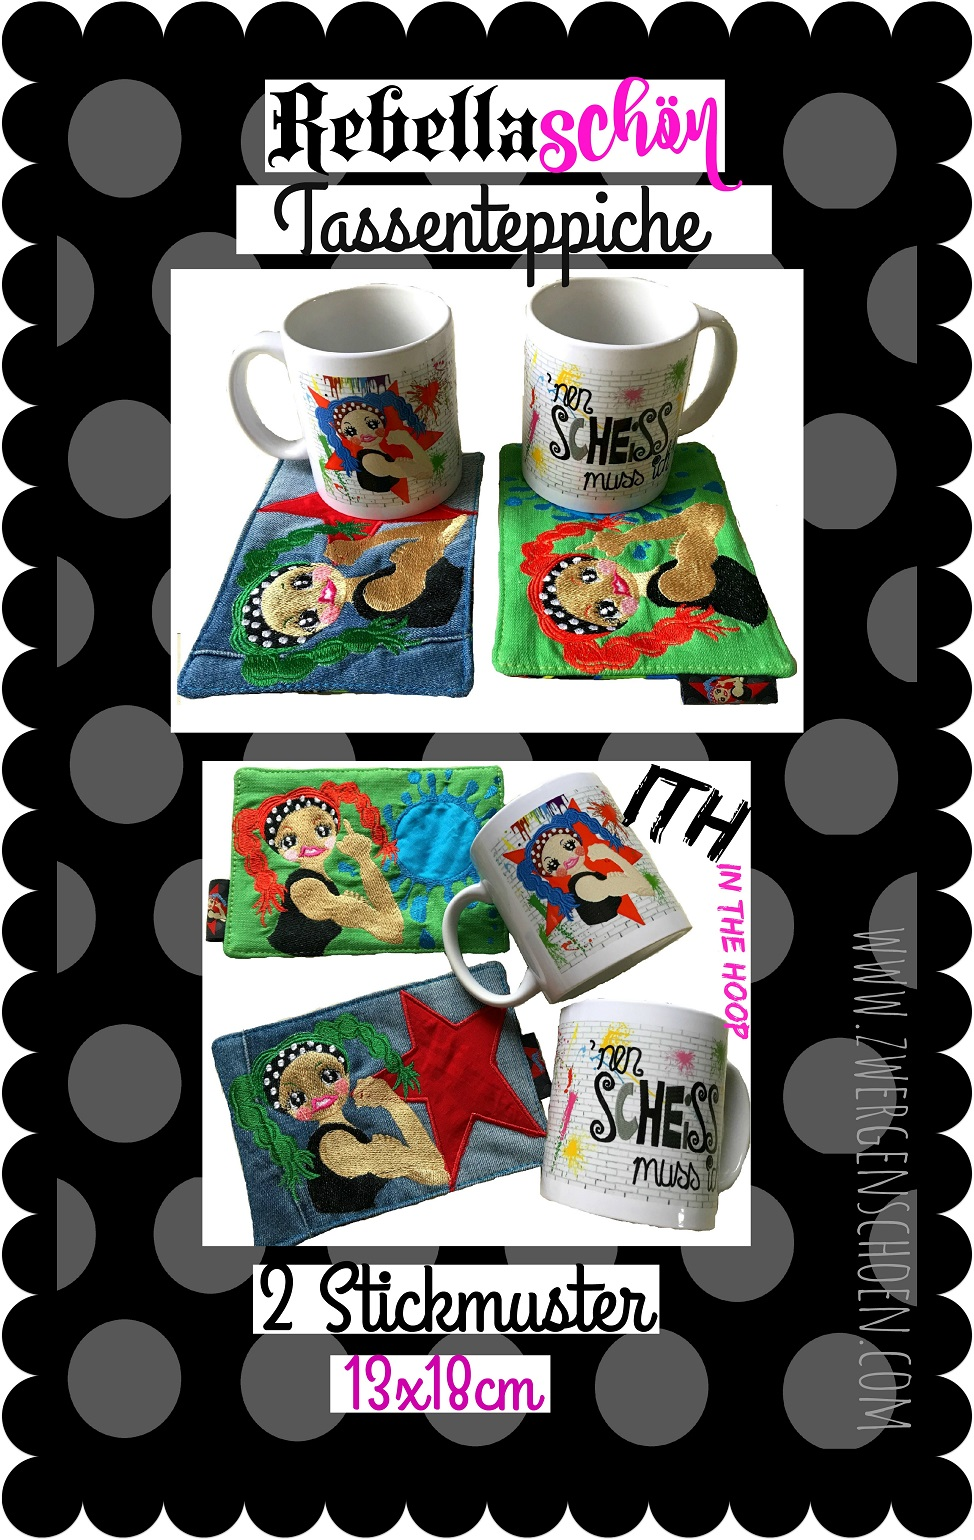 ♥REBELLAschoeN♥ Embroidery FILE-SET Mug Rug ITH 13x18cm We can co it